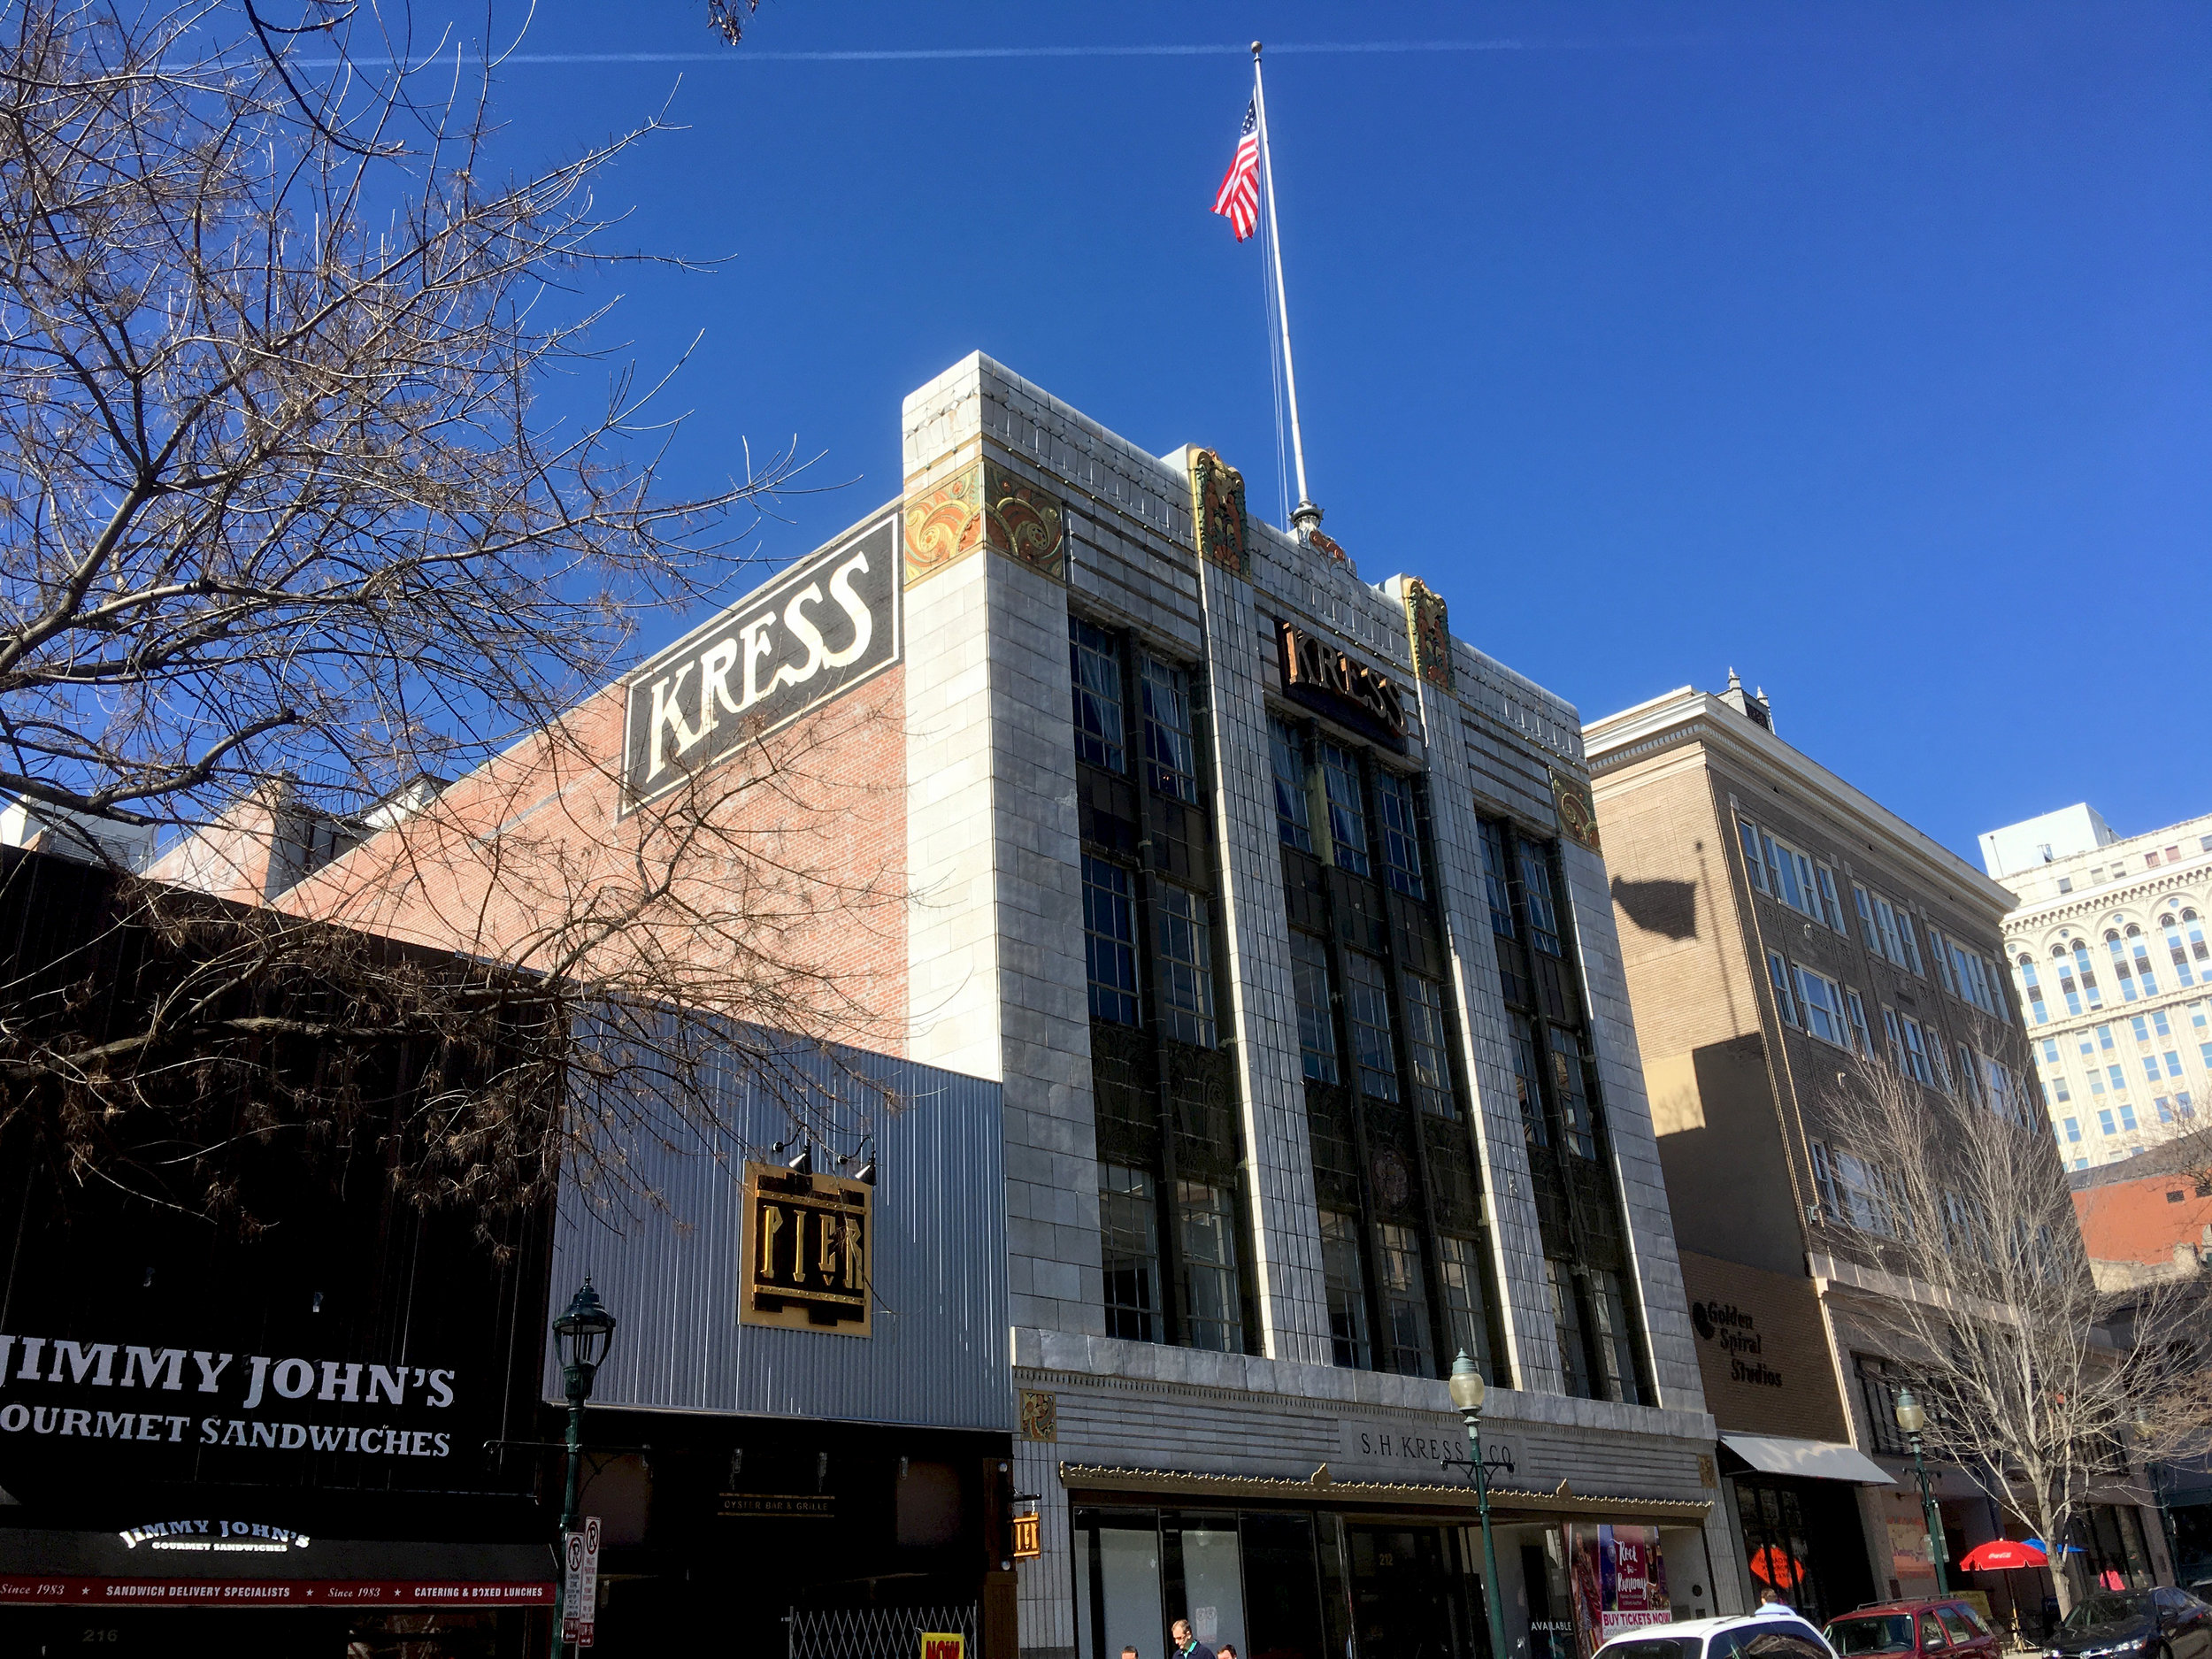 """S. H. Kress & Co. was the famous """"five and dime"""" store present in the downtowns of hundreds of American cities. It also played a role in the Civil Rights movement here."""